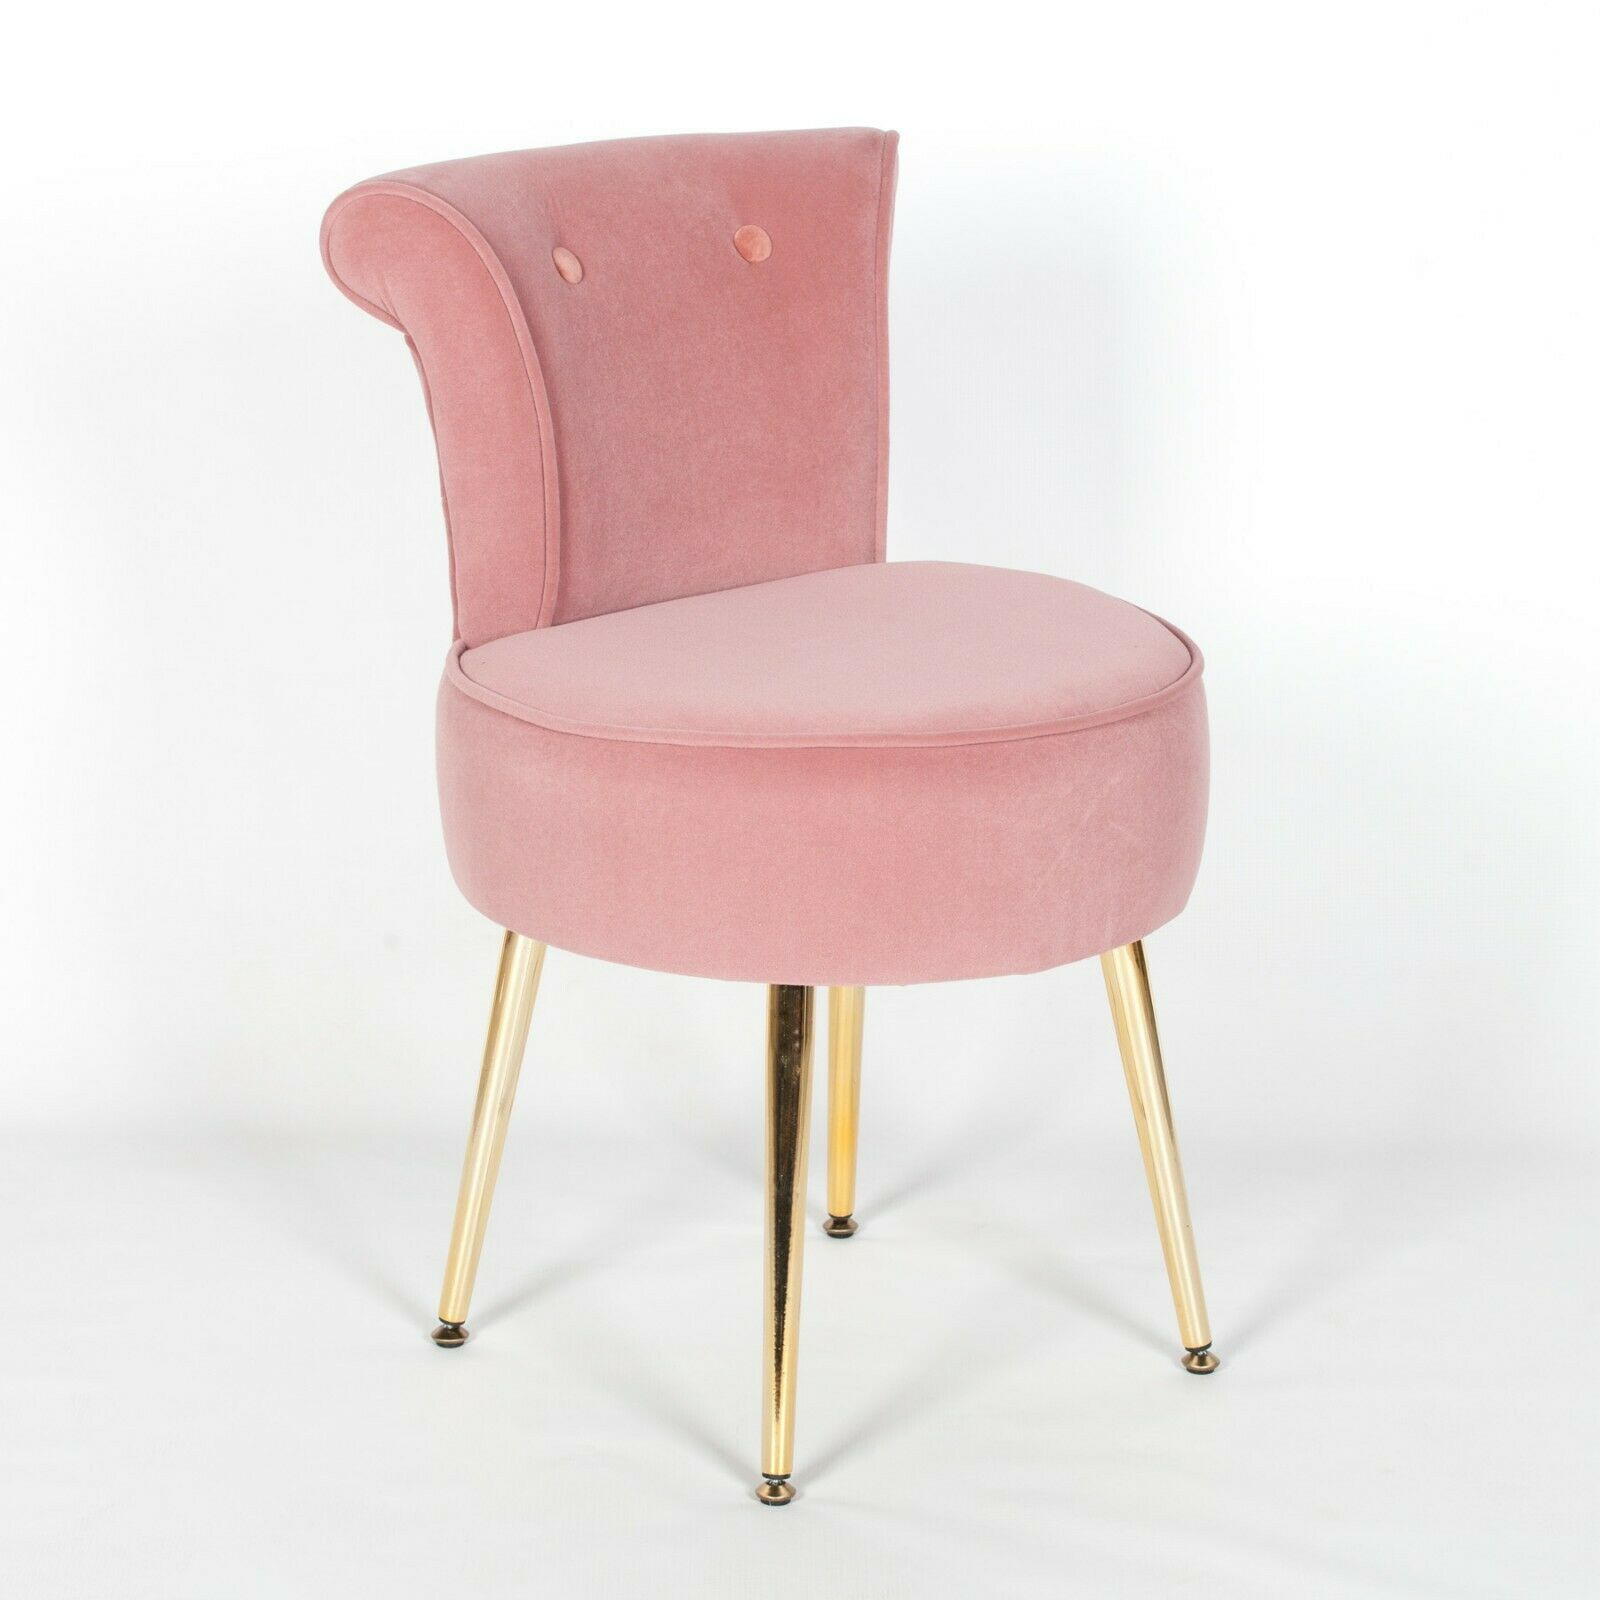 Amour Velvet Pink Gold Legs Dressing Table Stool Upholstered Bedroom Chair Furniture La Maison Chic Luxury Interiors